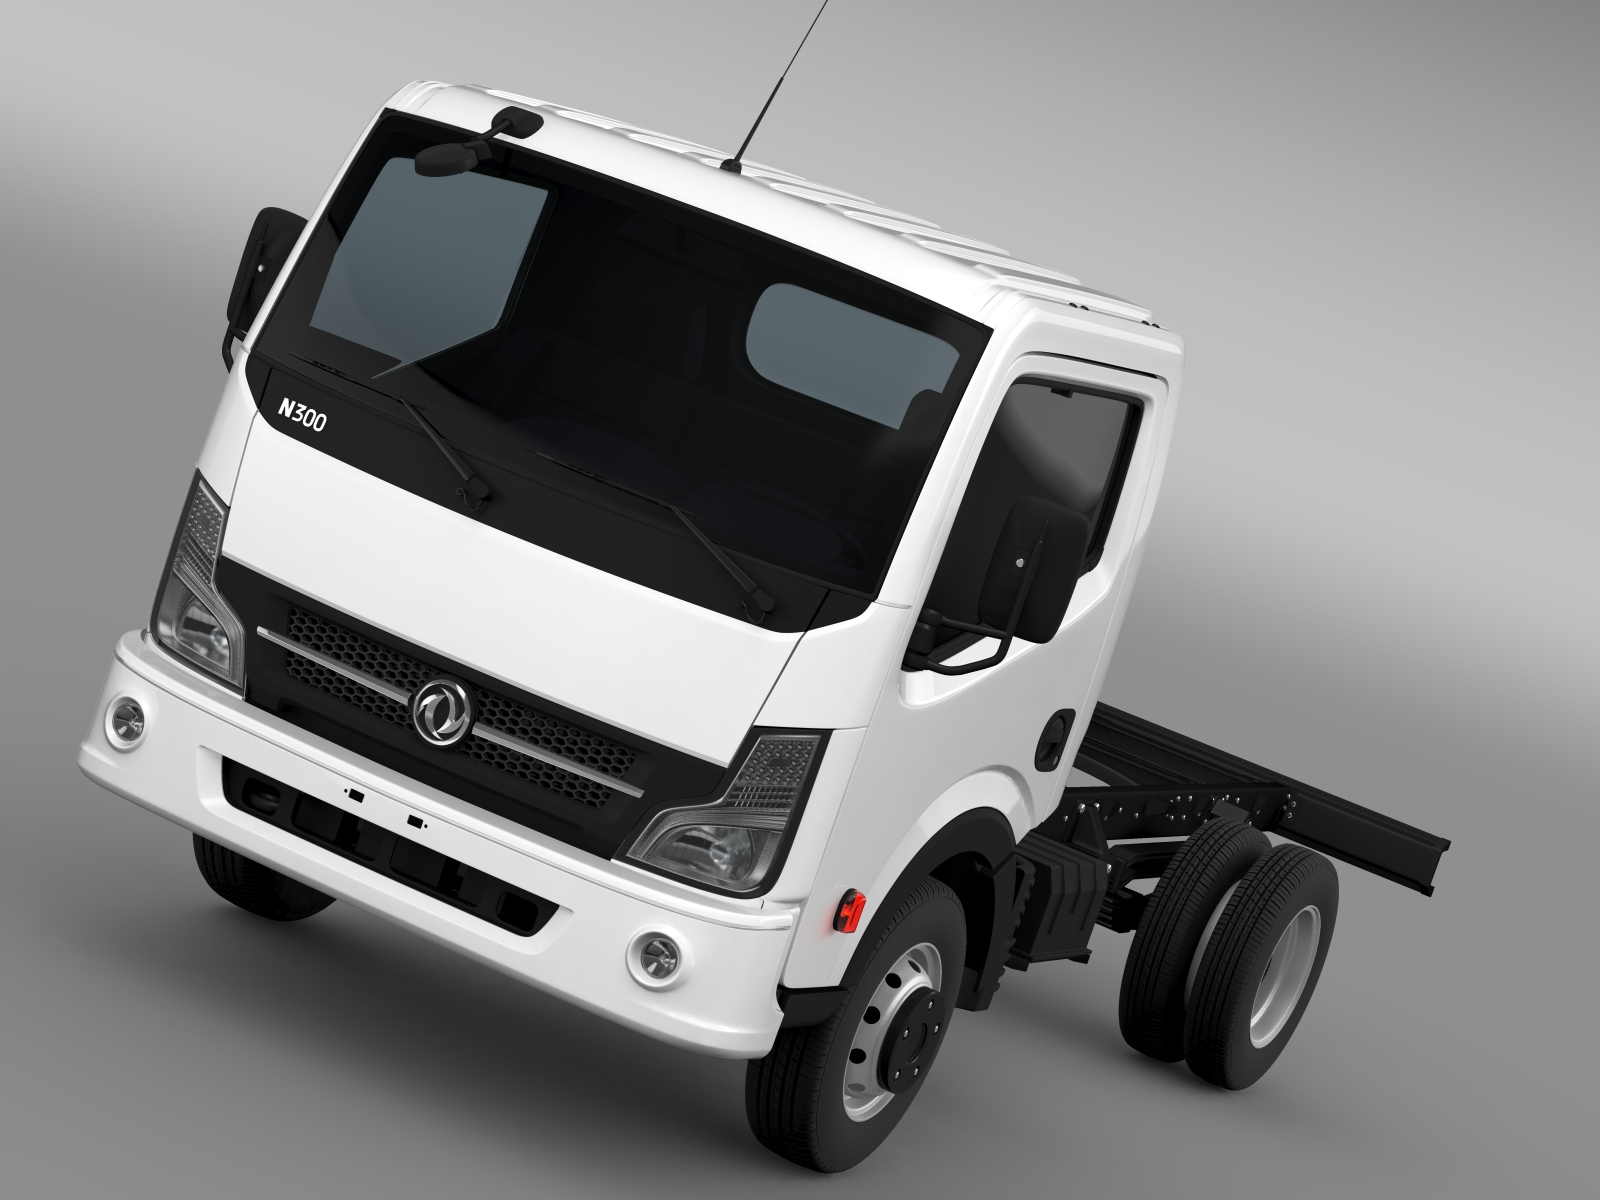 dongfeng n300 kapteinis chassi 2015 3d modelis 3ds max fbx c4d lwo ma mb hrc xsi obj 208950